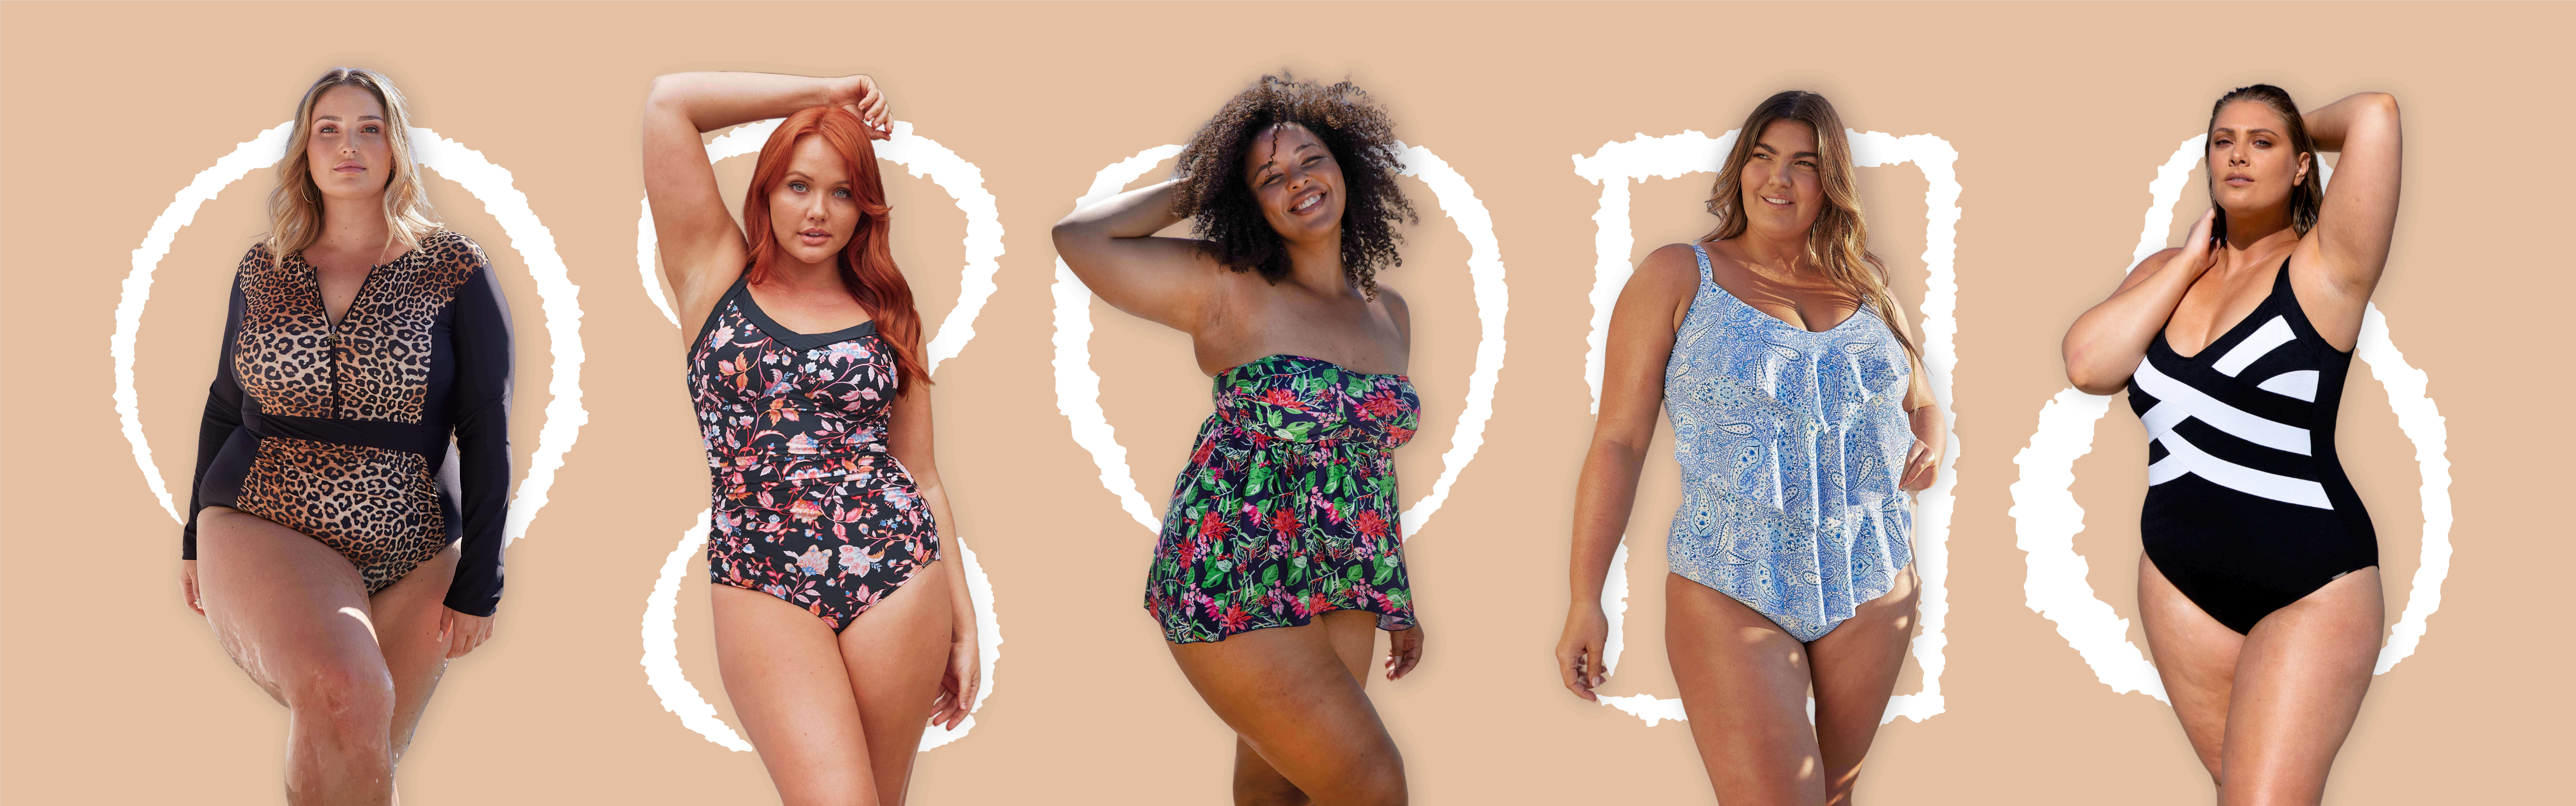 How To Decide What Swimsuit Is Best For Your Body Type